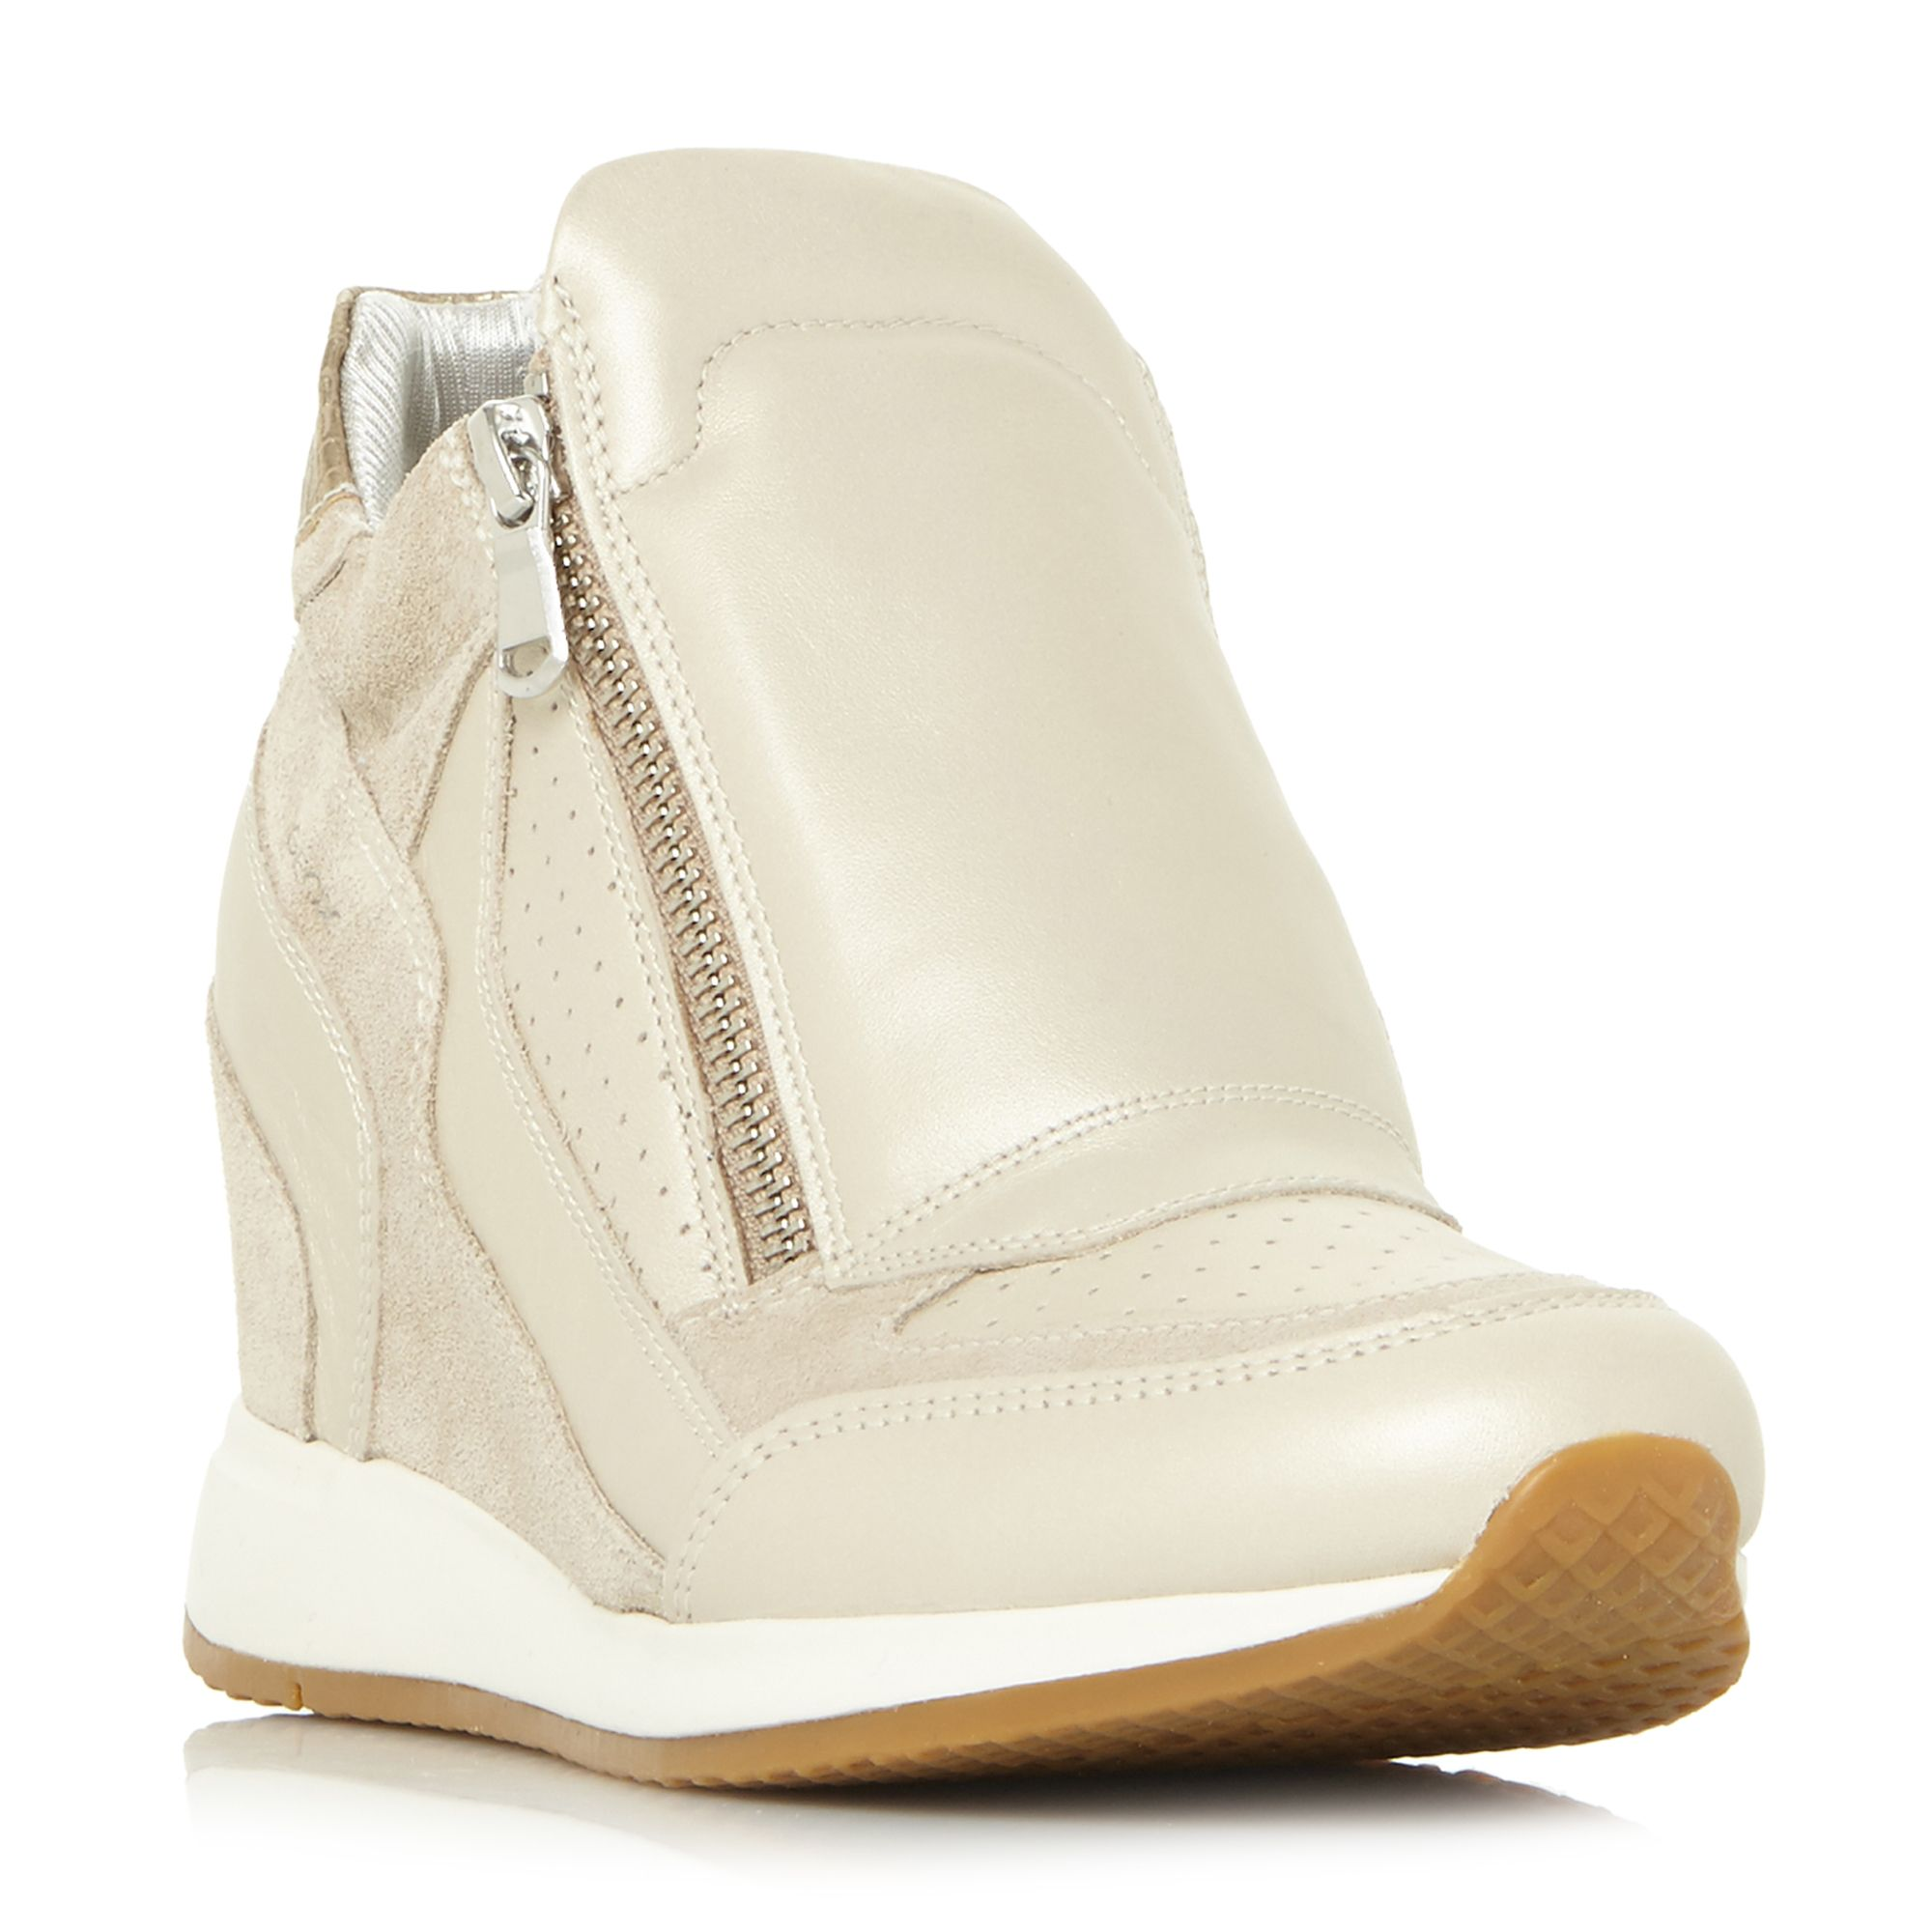 Geox Nydame Zip Side Wedge Trainers, Taupe